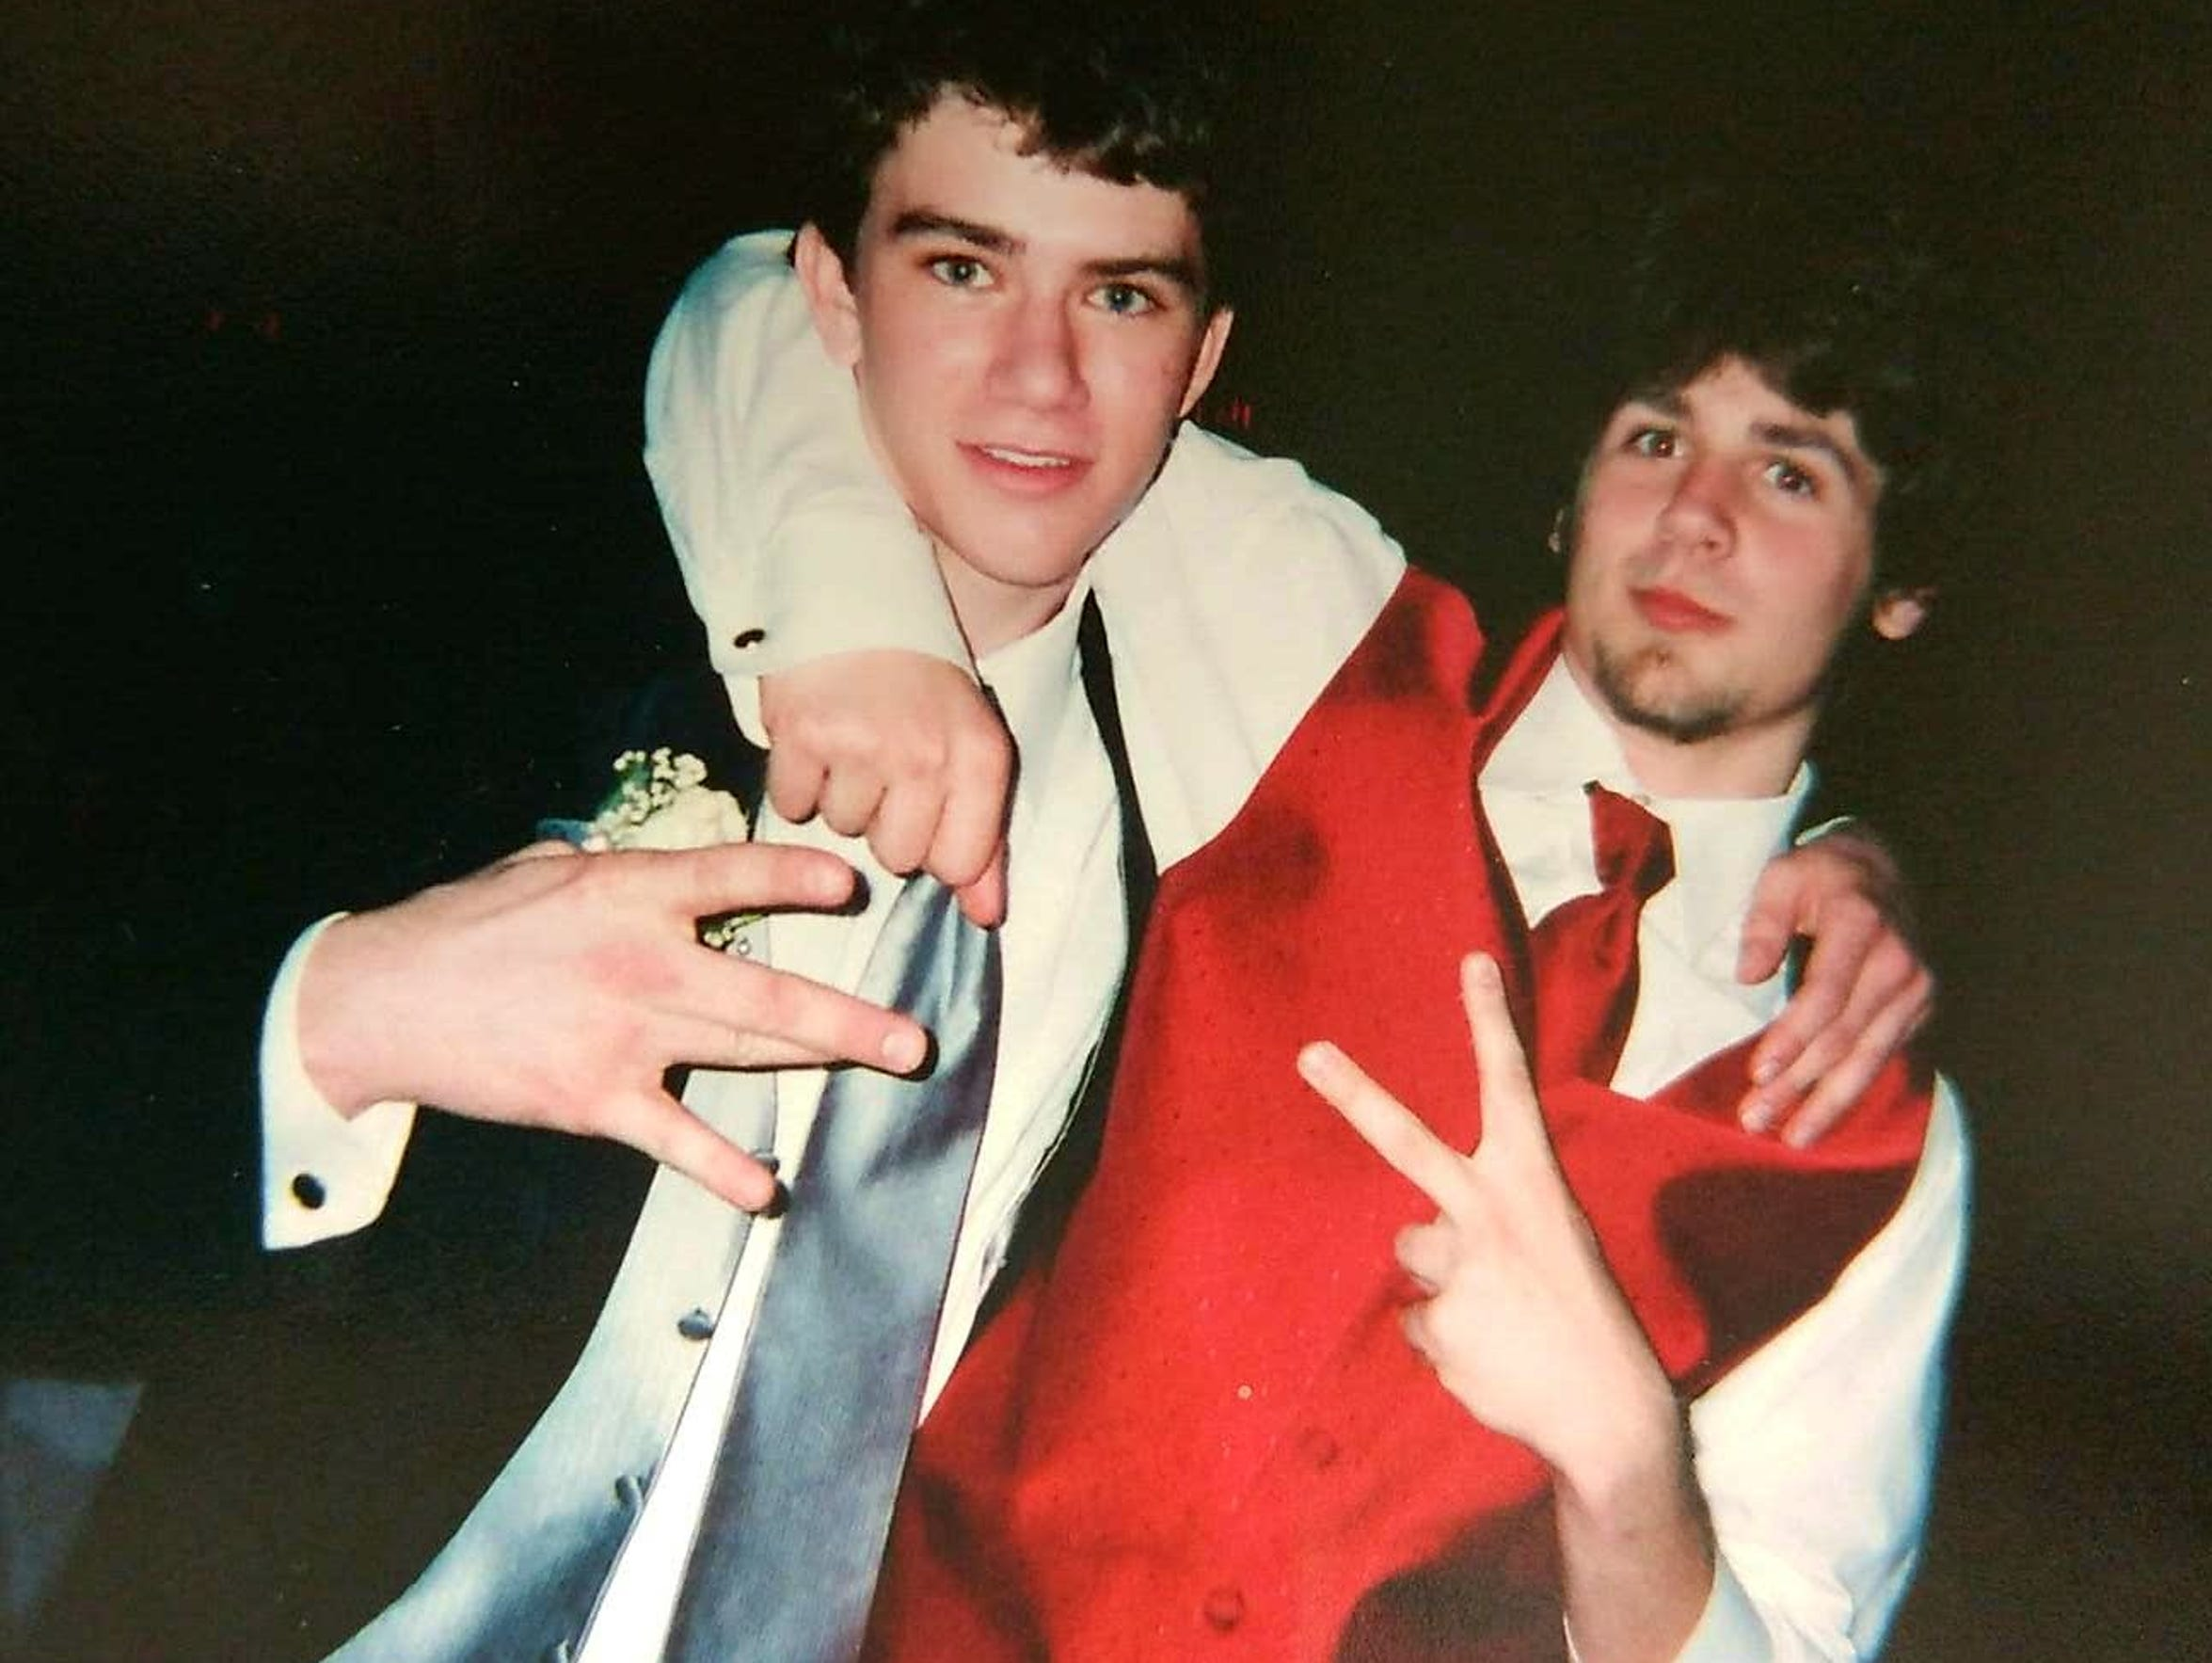 Marc Brumbaugh, left, and Bryon Rock, pictured at a high school dance. Brumbaugh died April 22, 2017 at age 27, and Rock died in July 23, 2014 at age 24. Both lived in Waynesboro.